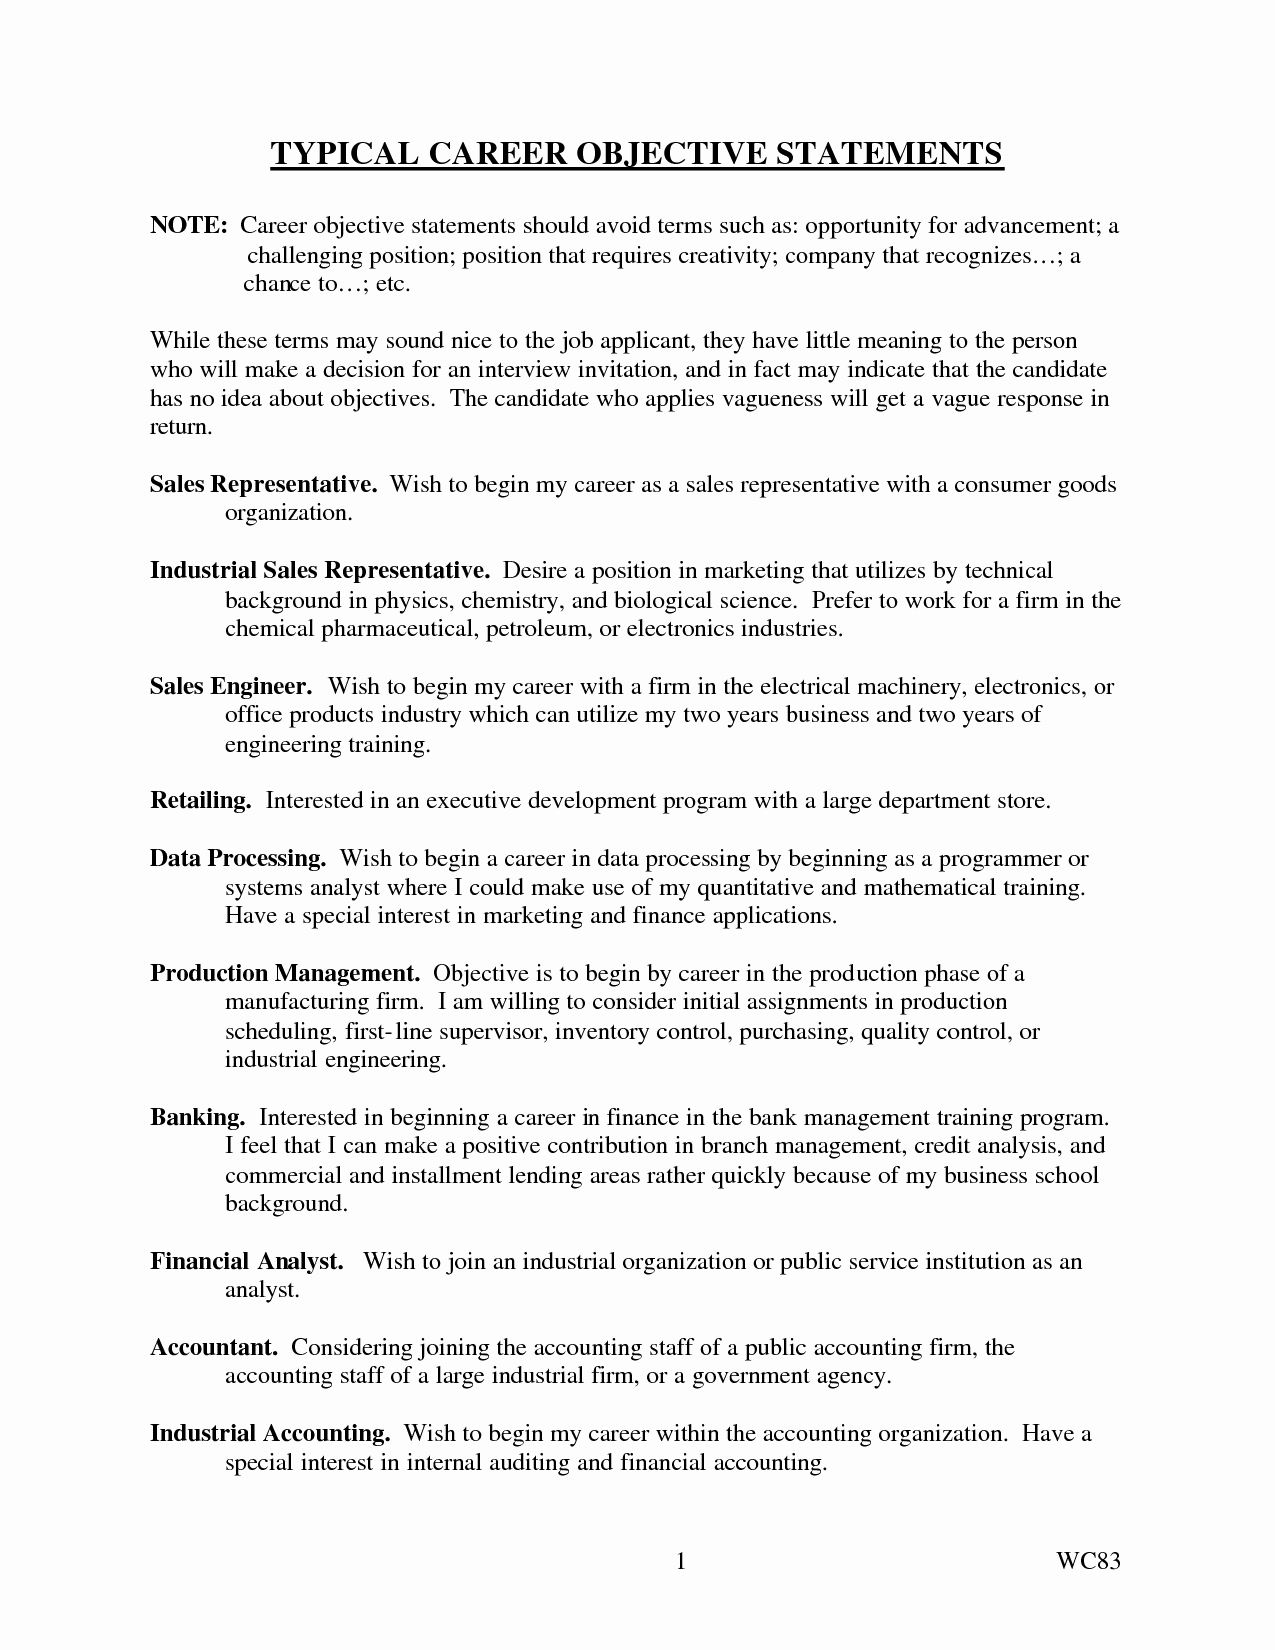 Cover Letter format Uf Inspirational Typical Career Objective Statements Career Statements